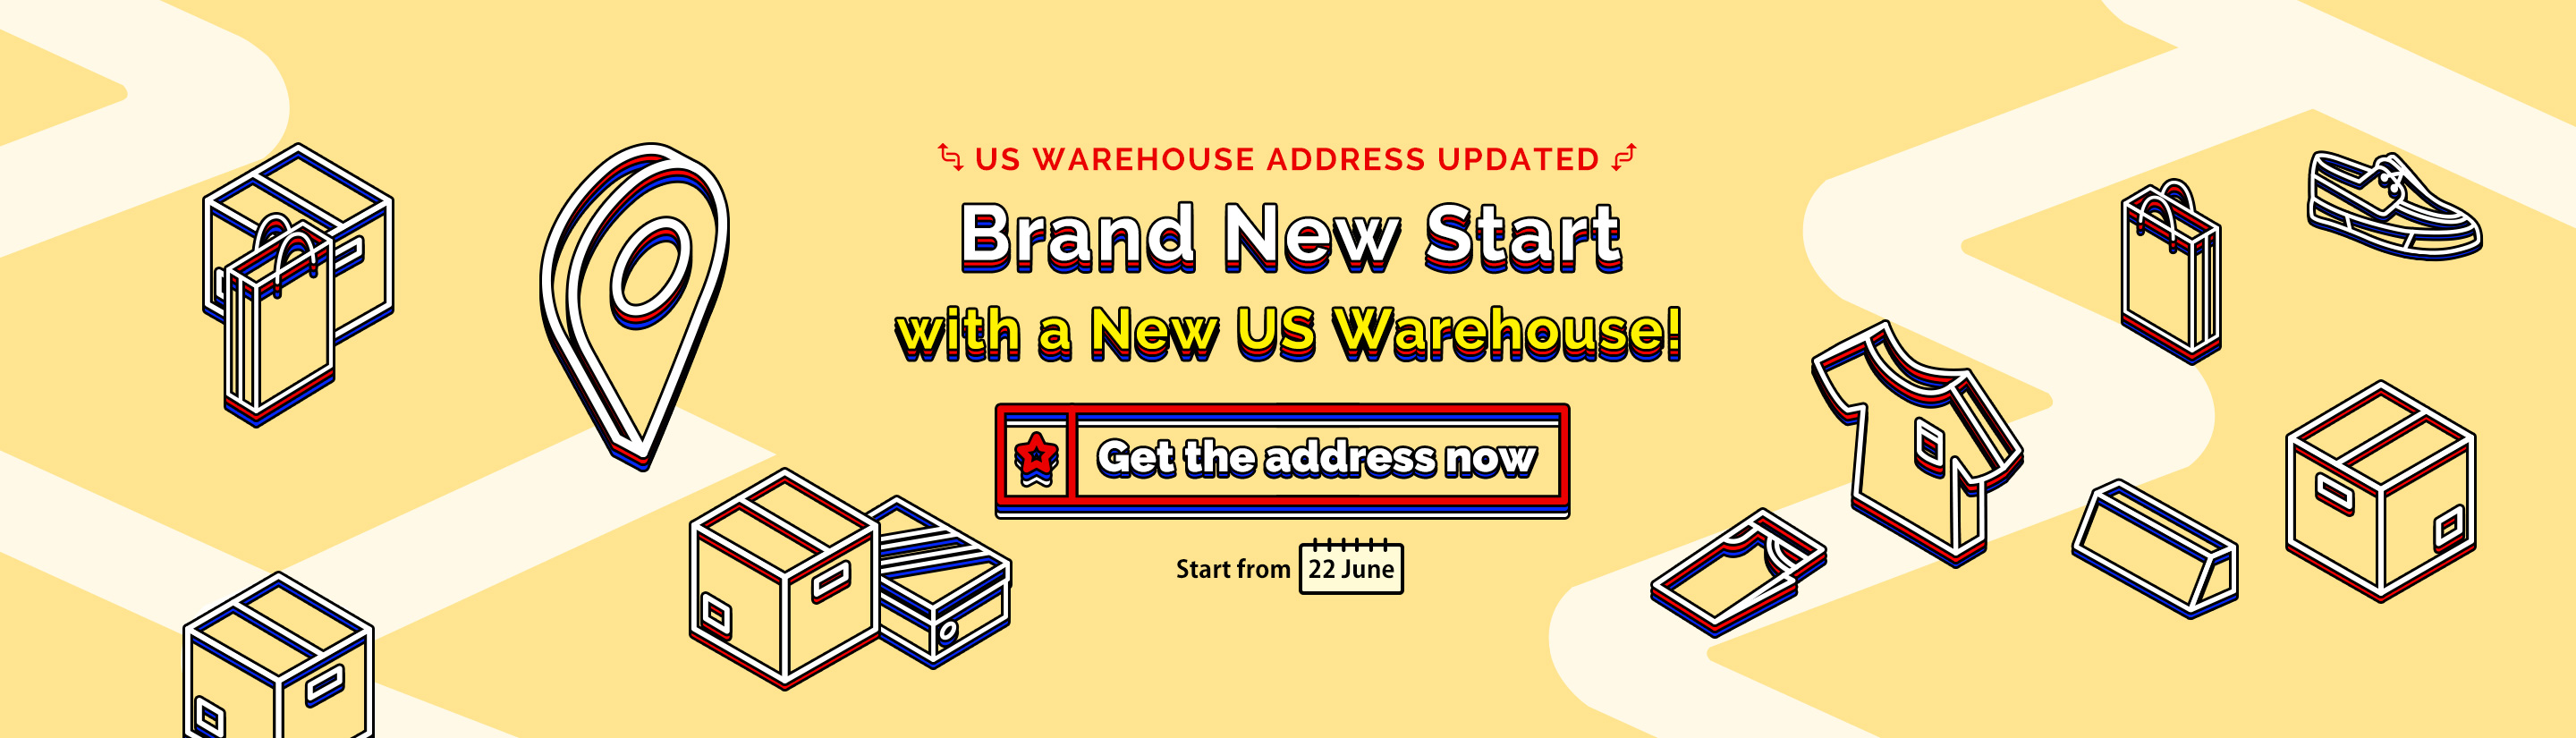 USWarehouse